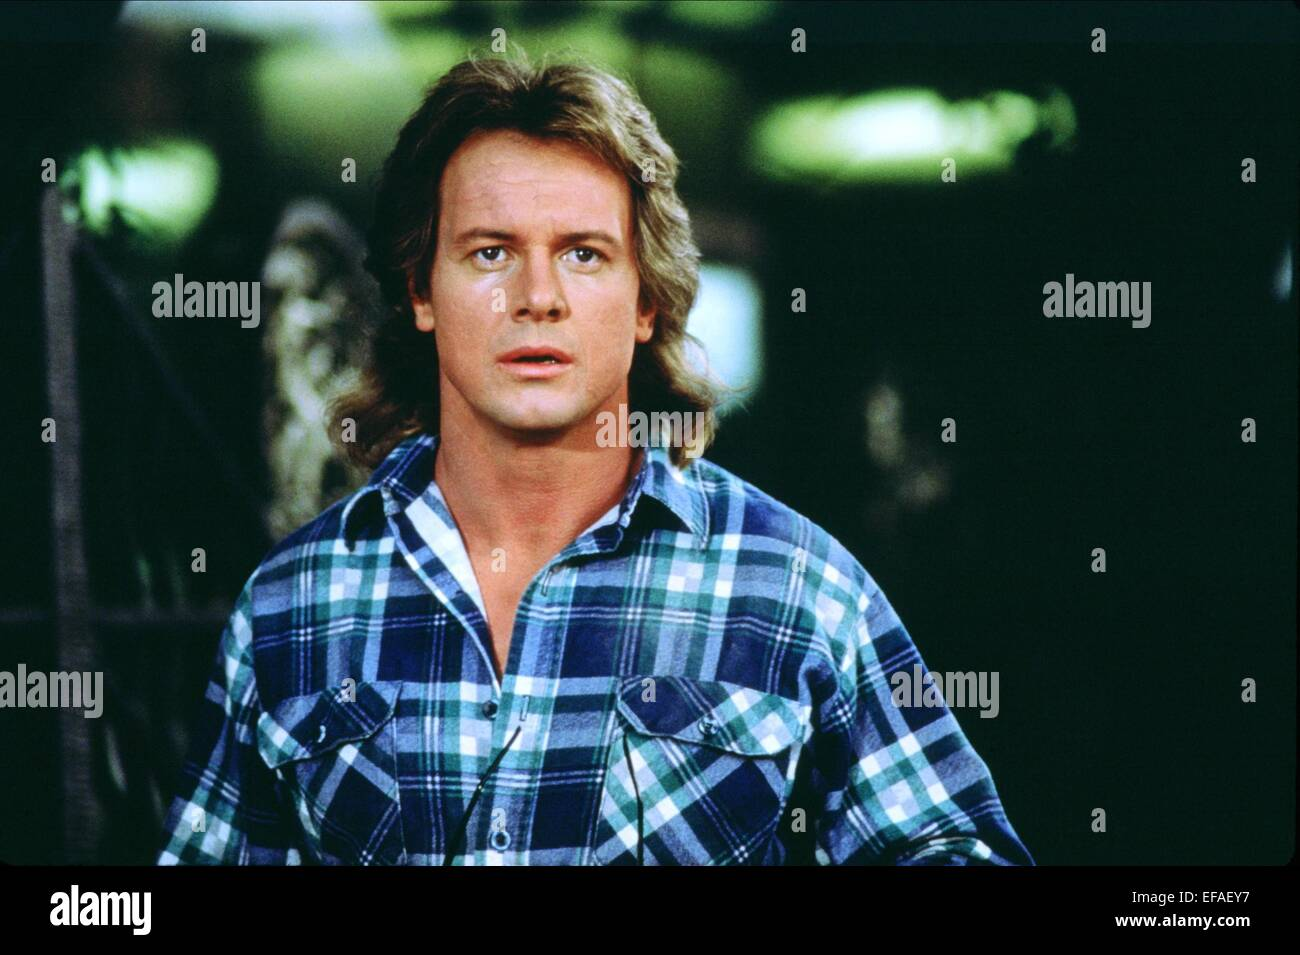 Forum on this topic: J. J. North, roddy-piper/